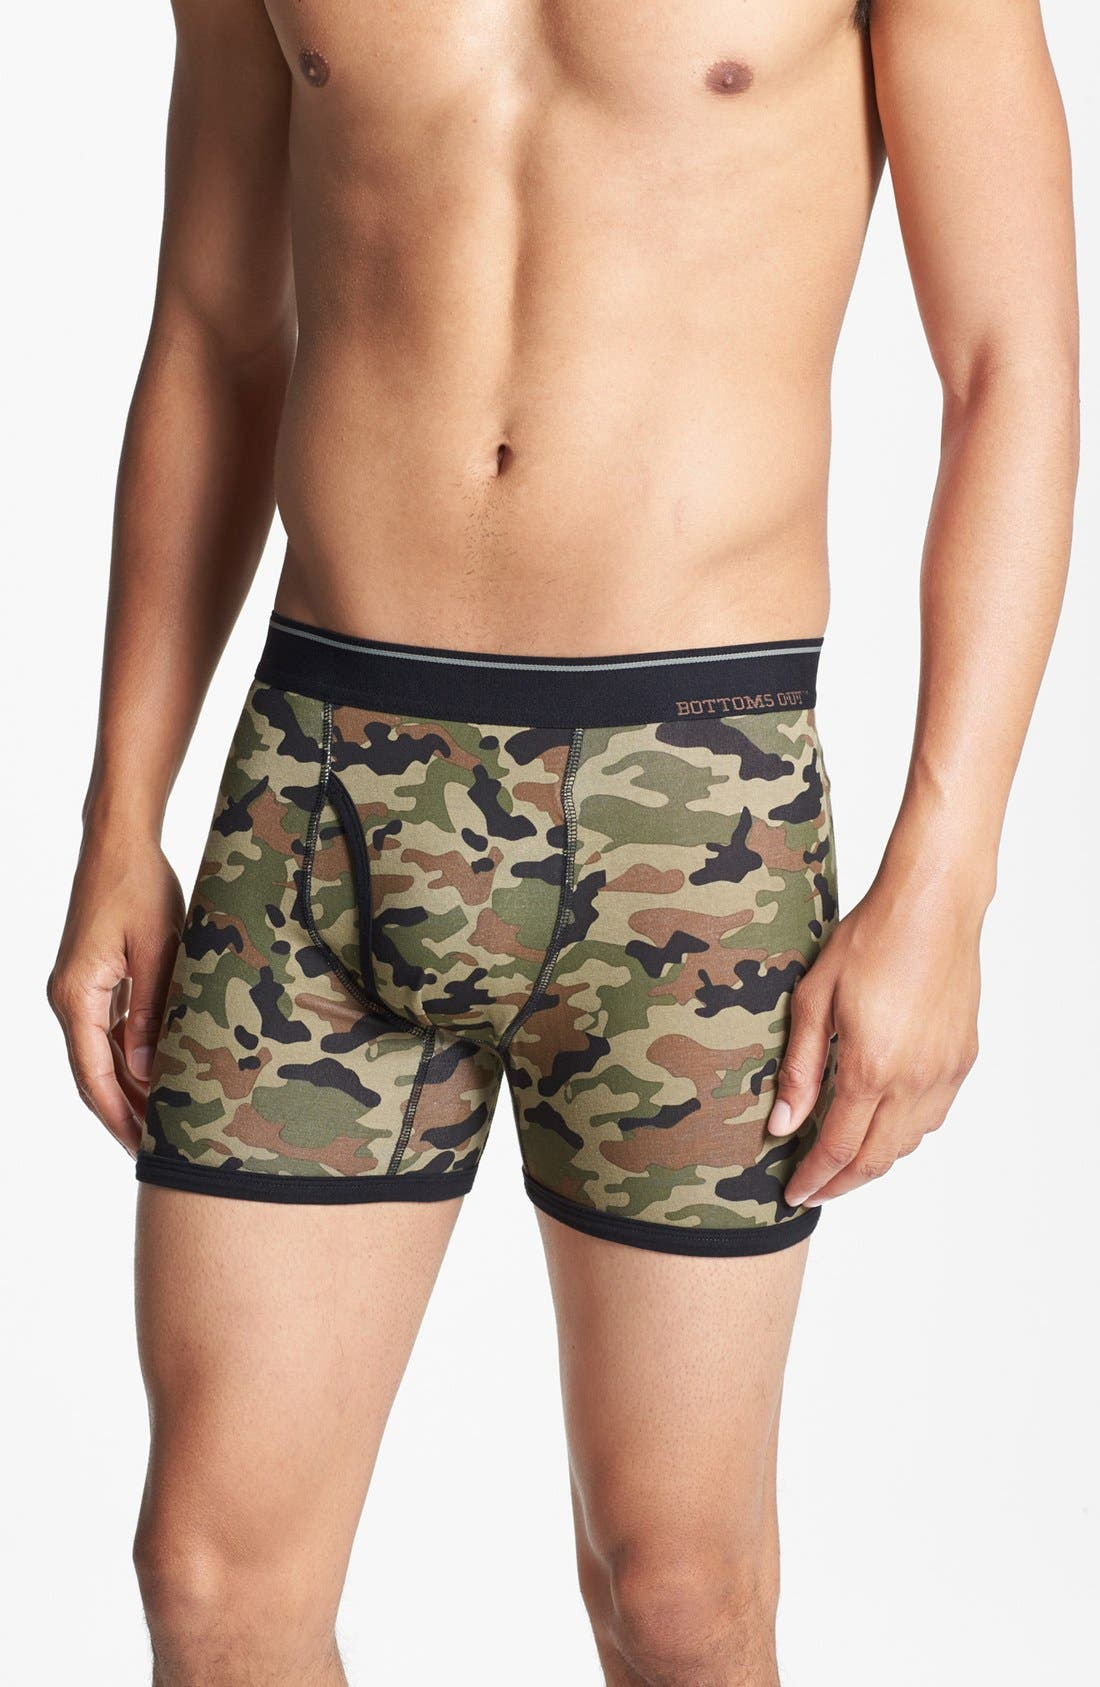 Alternate Image 1 Selected - Basic Underwear 'Bottoms Out' Boxer Briefs (3-Pack)